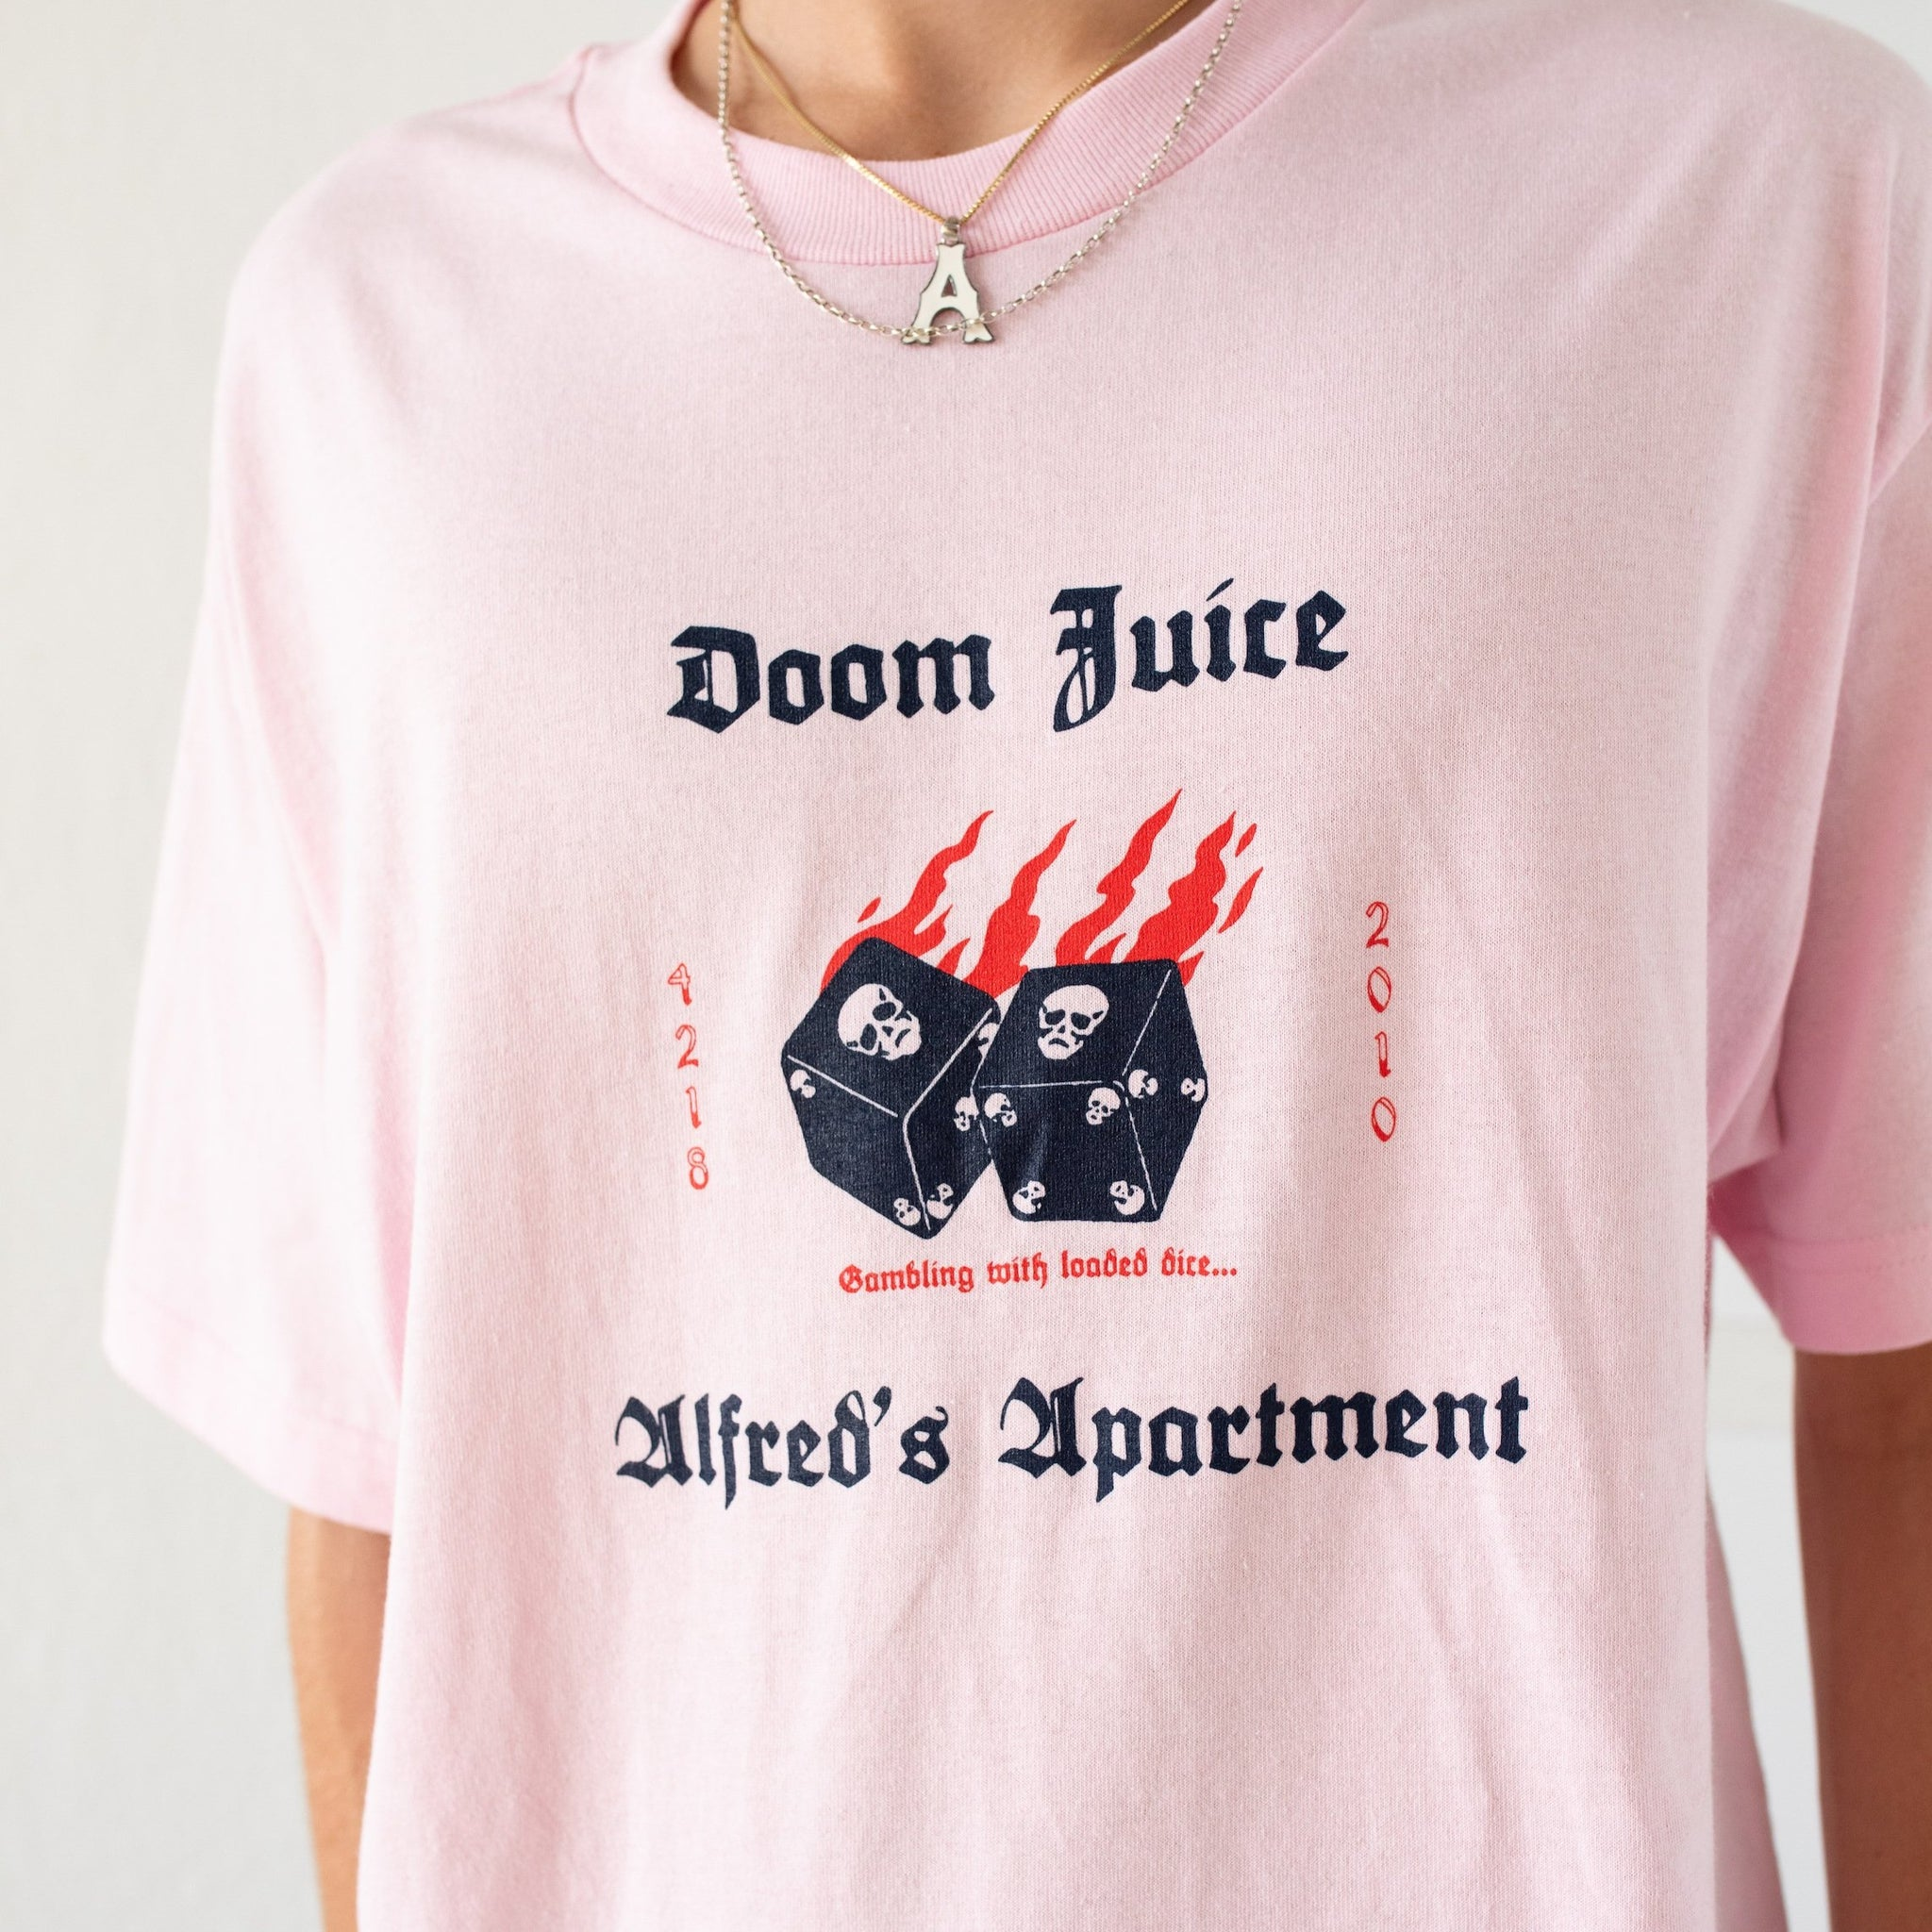 Doom Juice X Alfred's Apartment